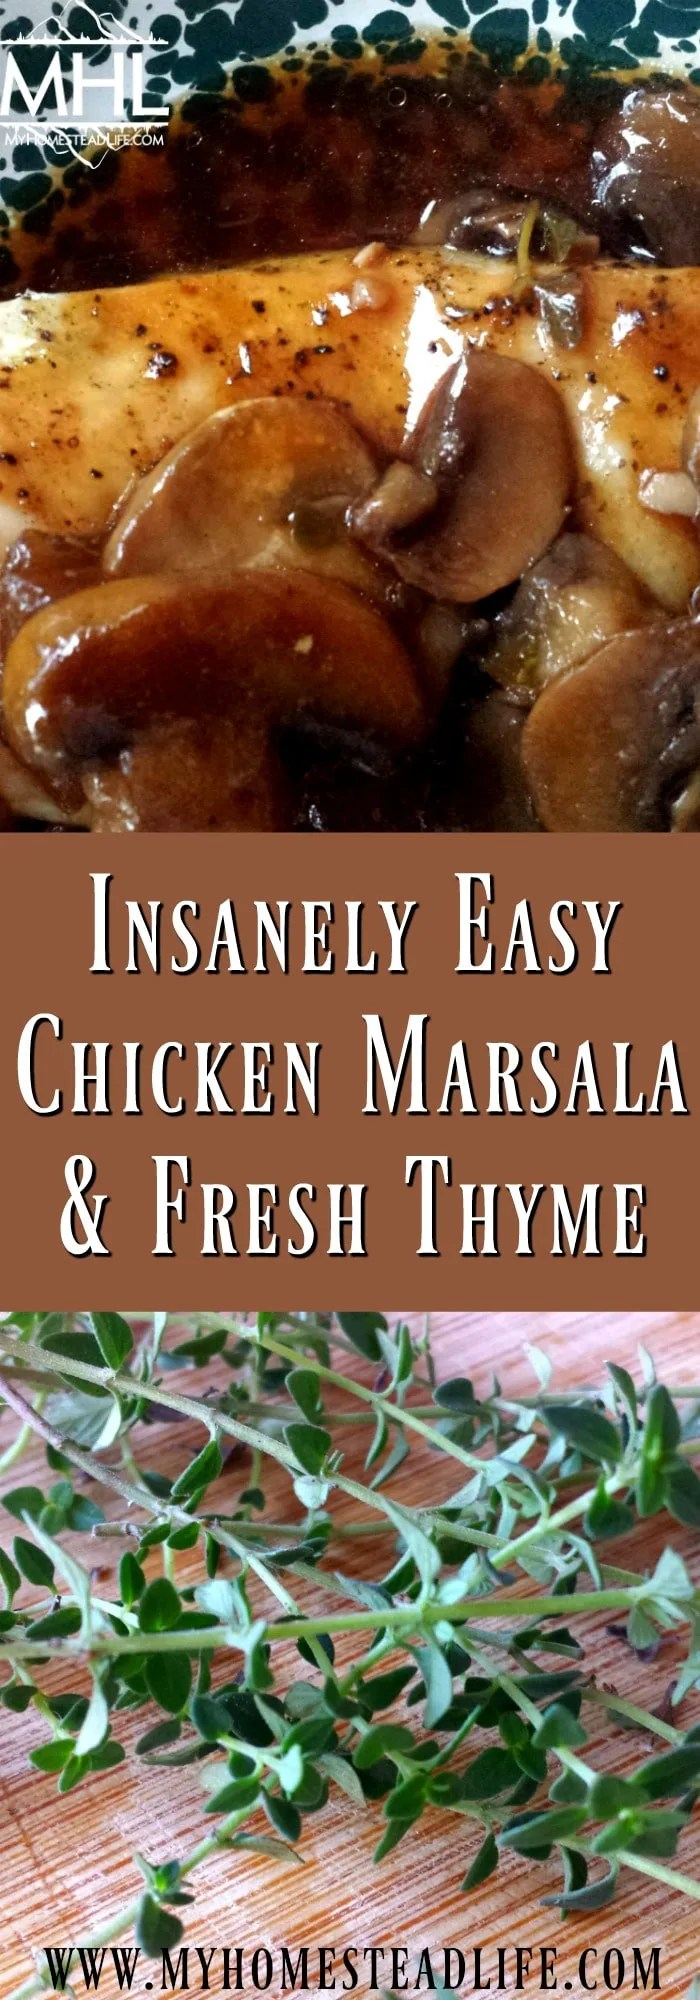 Insanely Easy Chicken Marsala with Fresh Thyme